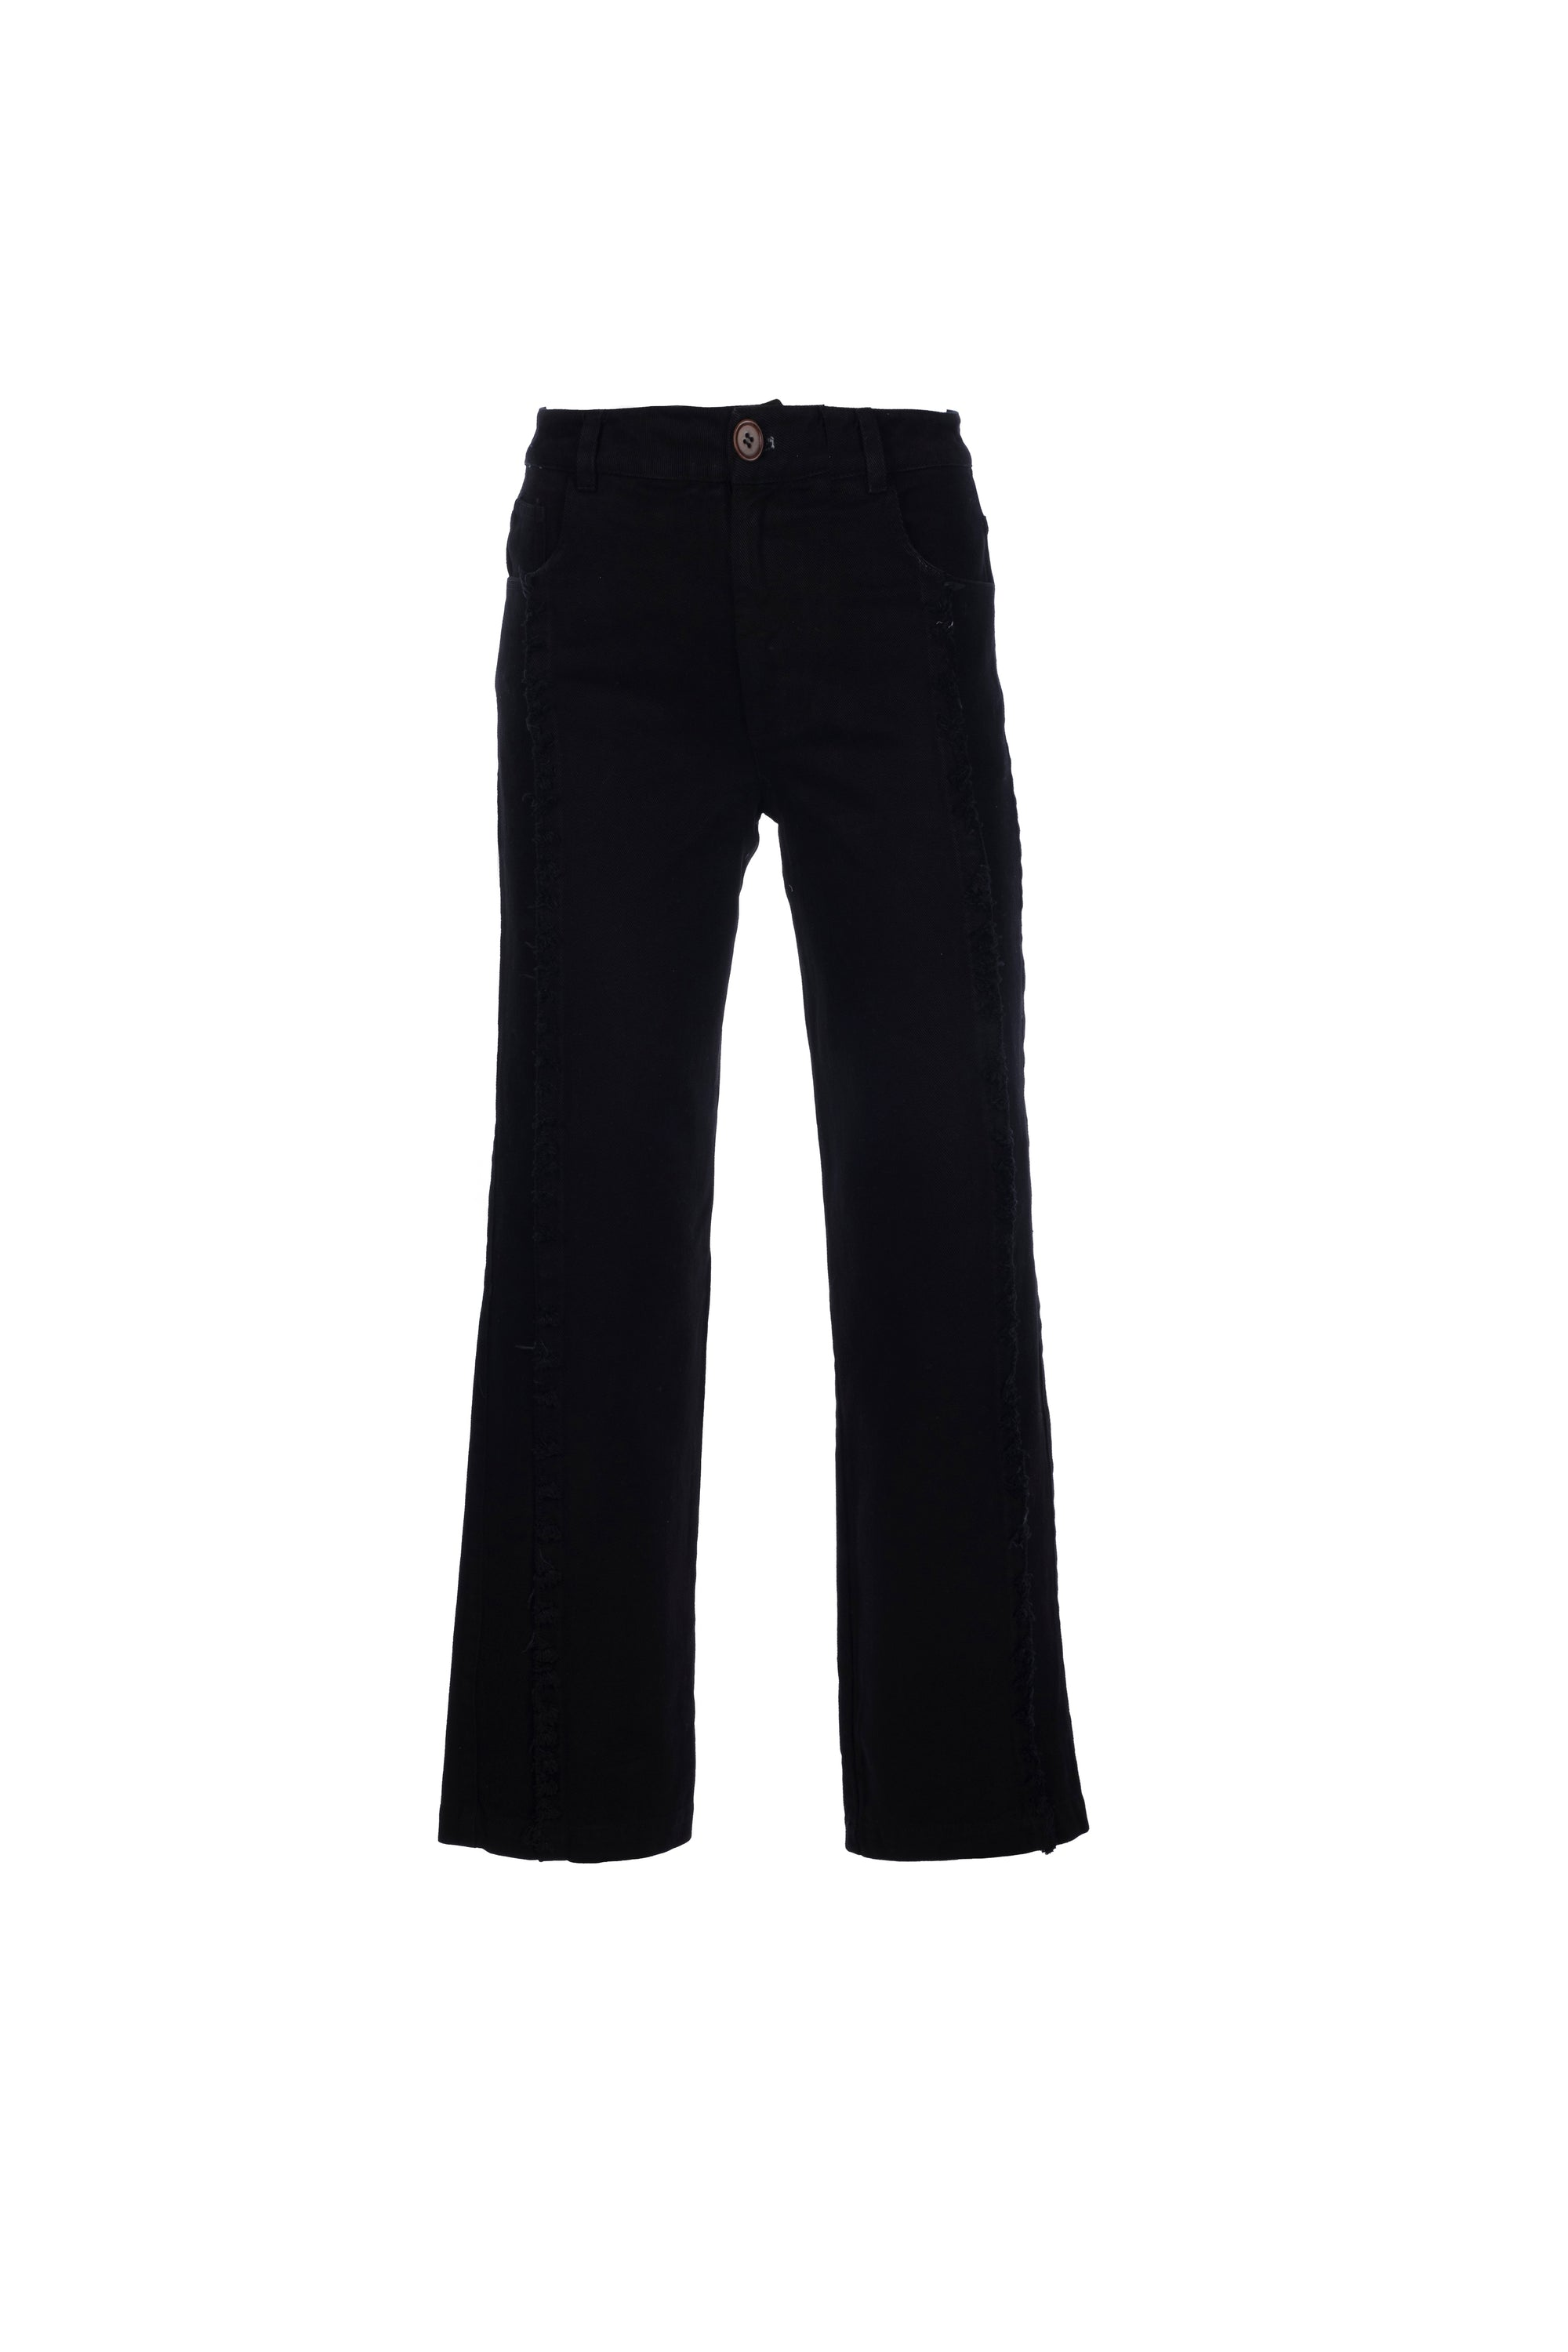 By Signe Berta Jeans in Black with straight legs and raw-edge side seams.